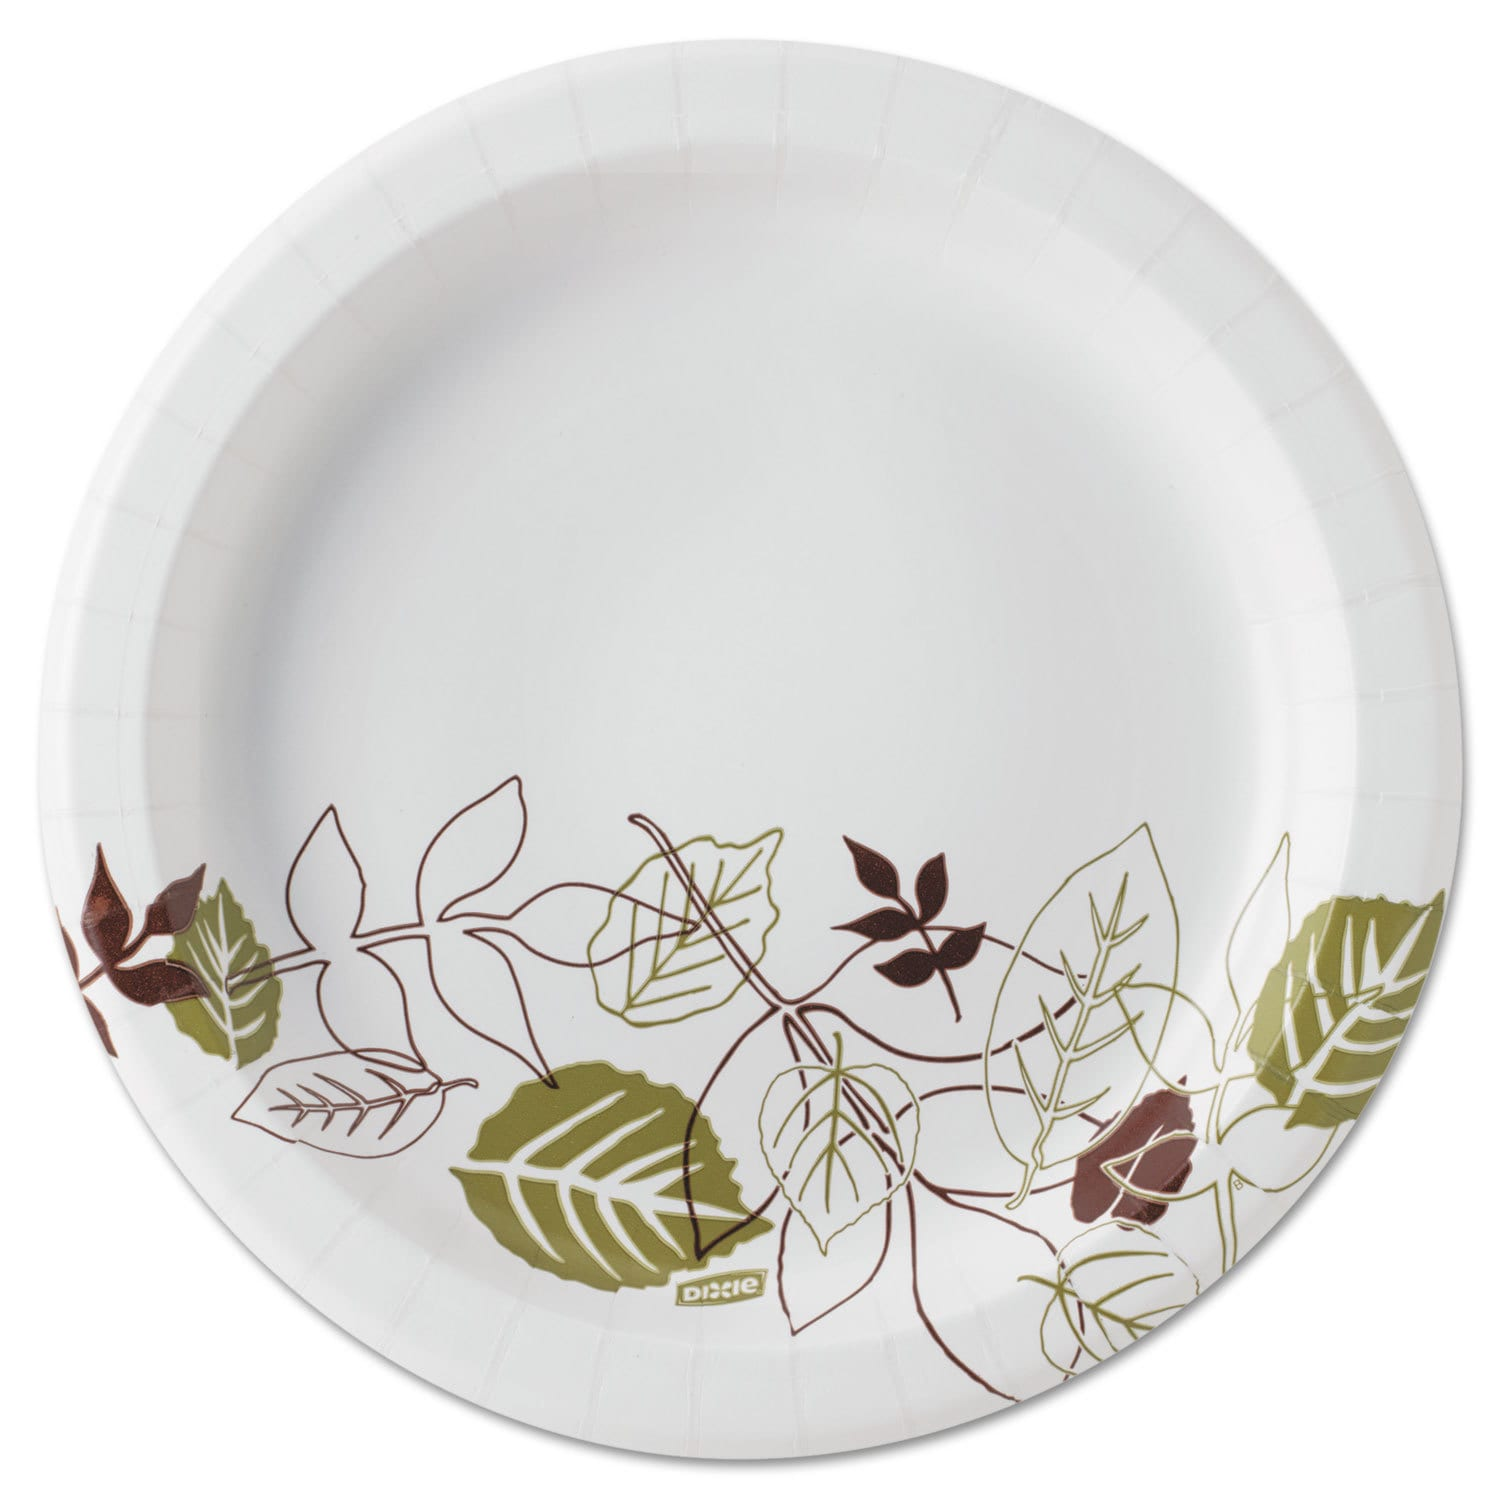 DIXIE Pathways Soak-Proof Shield Medium Wt Paper Plates 8...